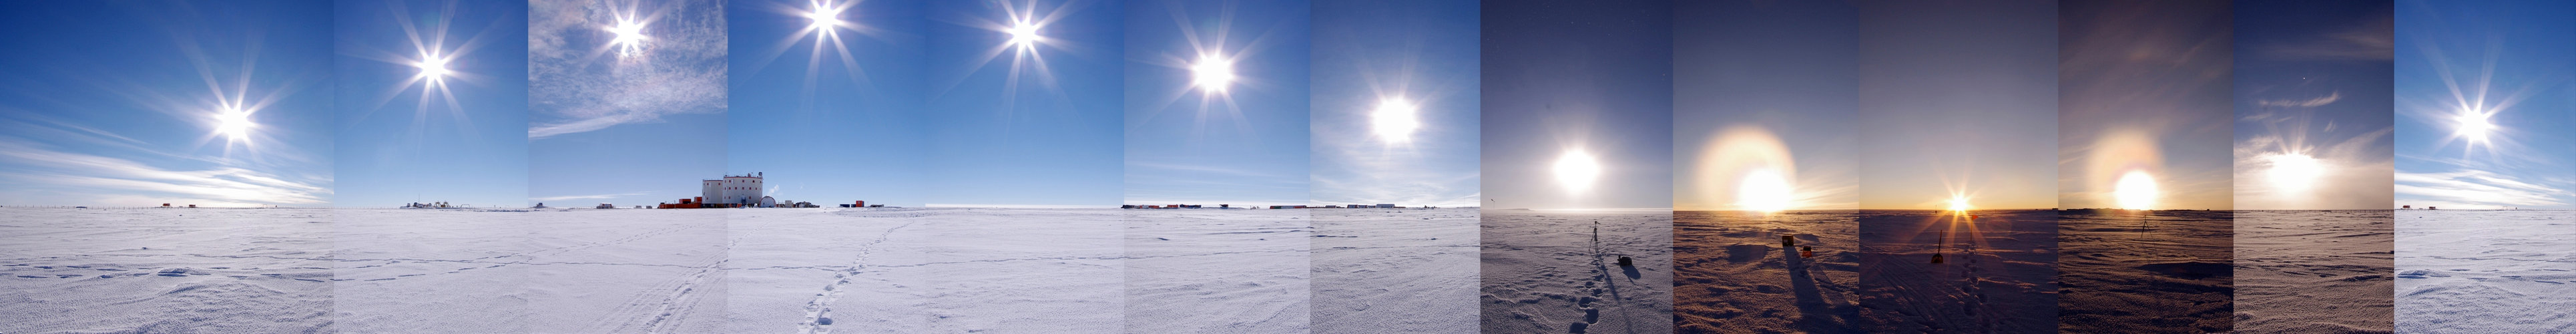 24-hour Antarctic panorama